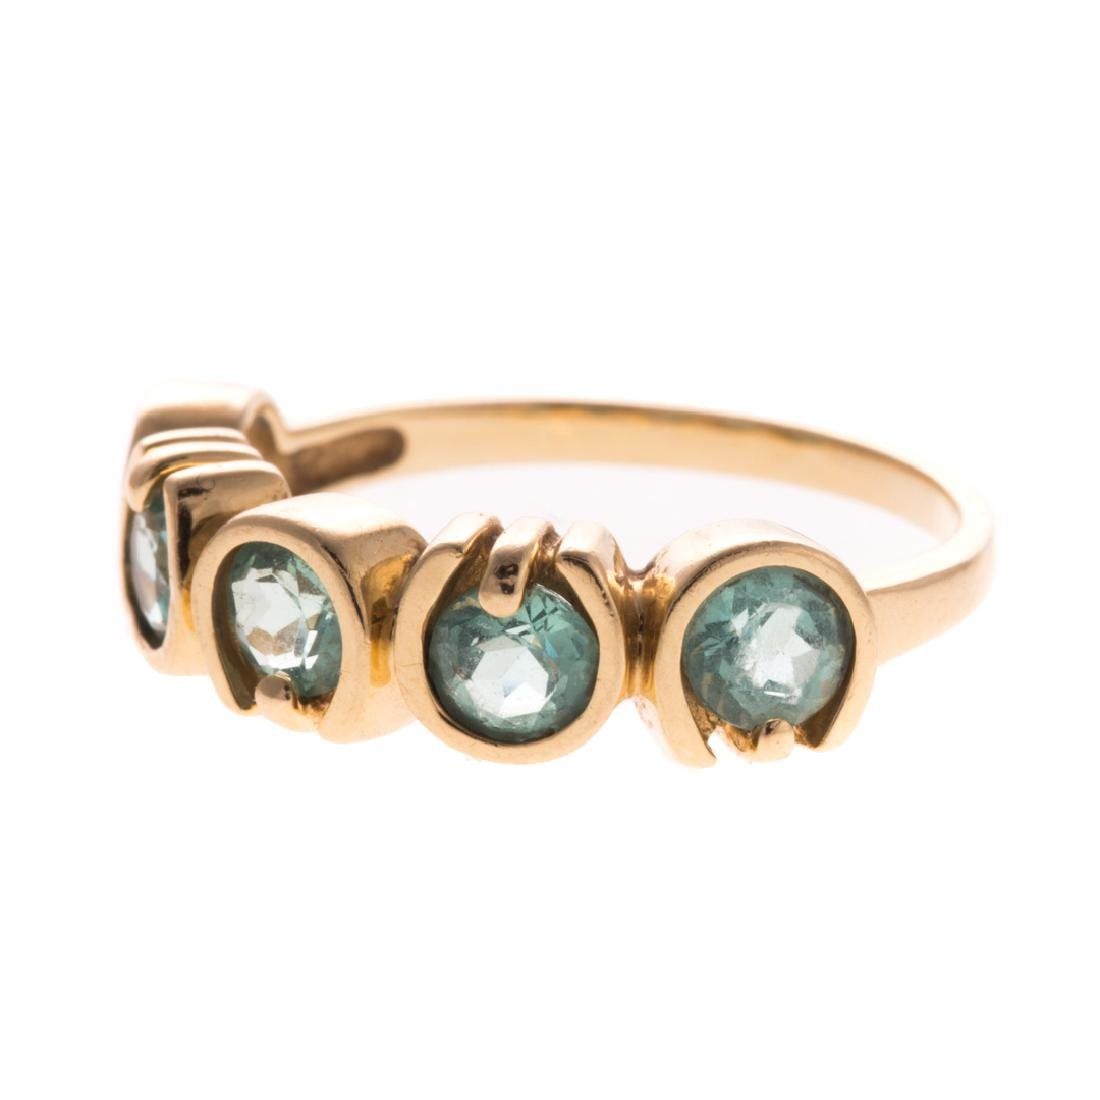 A Pair of 14K Gemstone Band Rings - 2